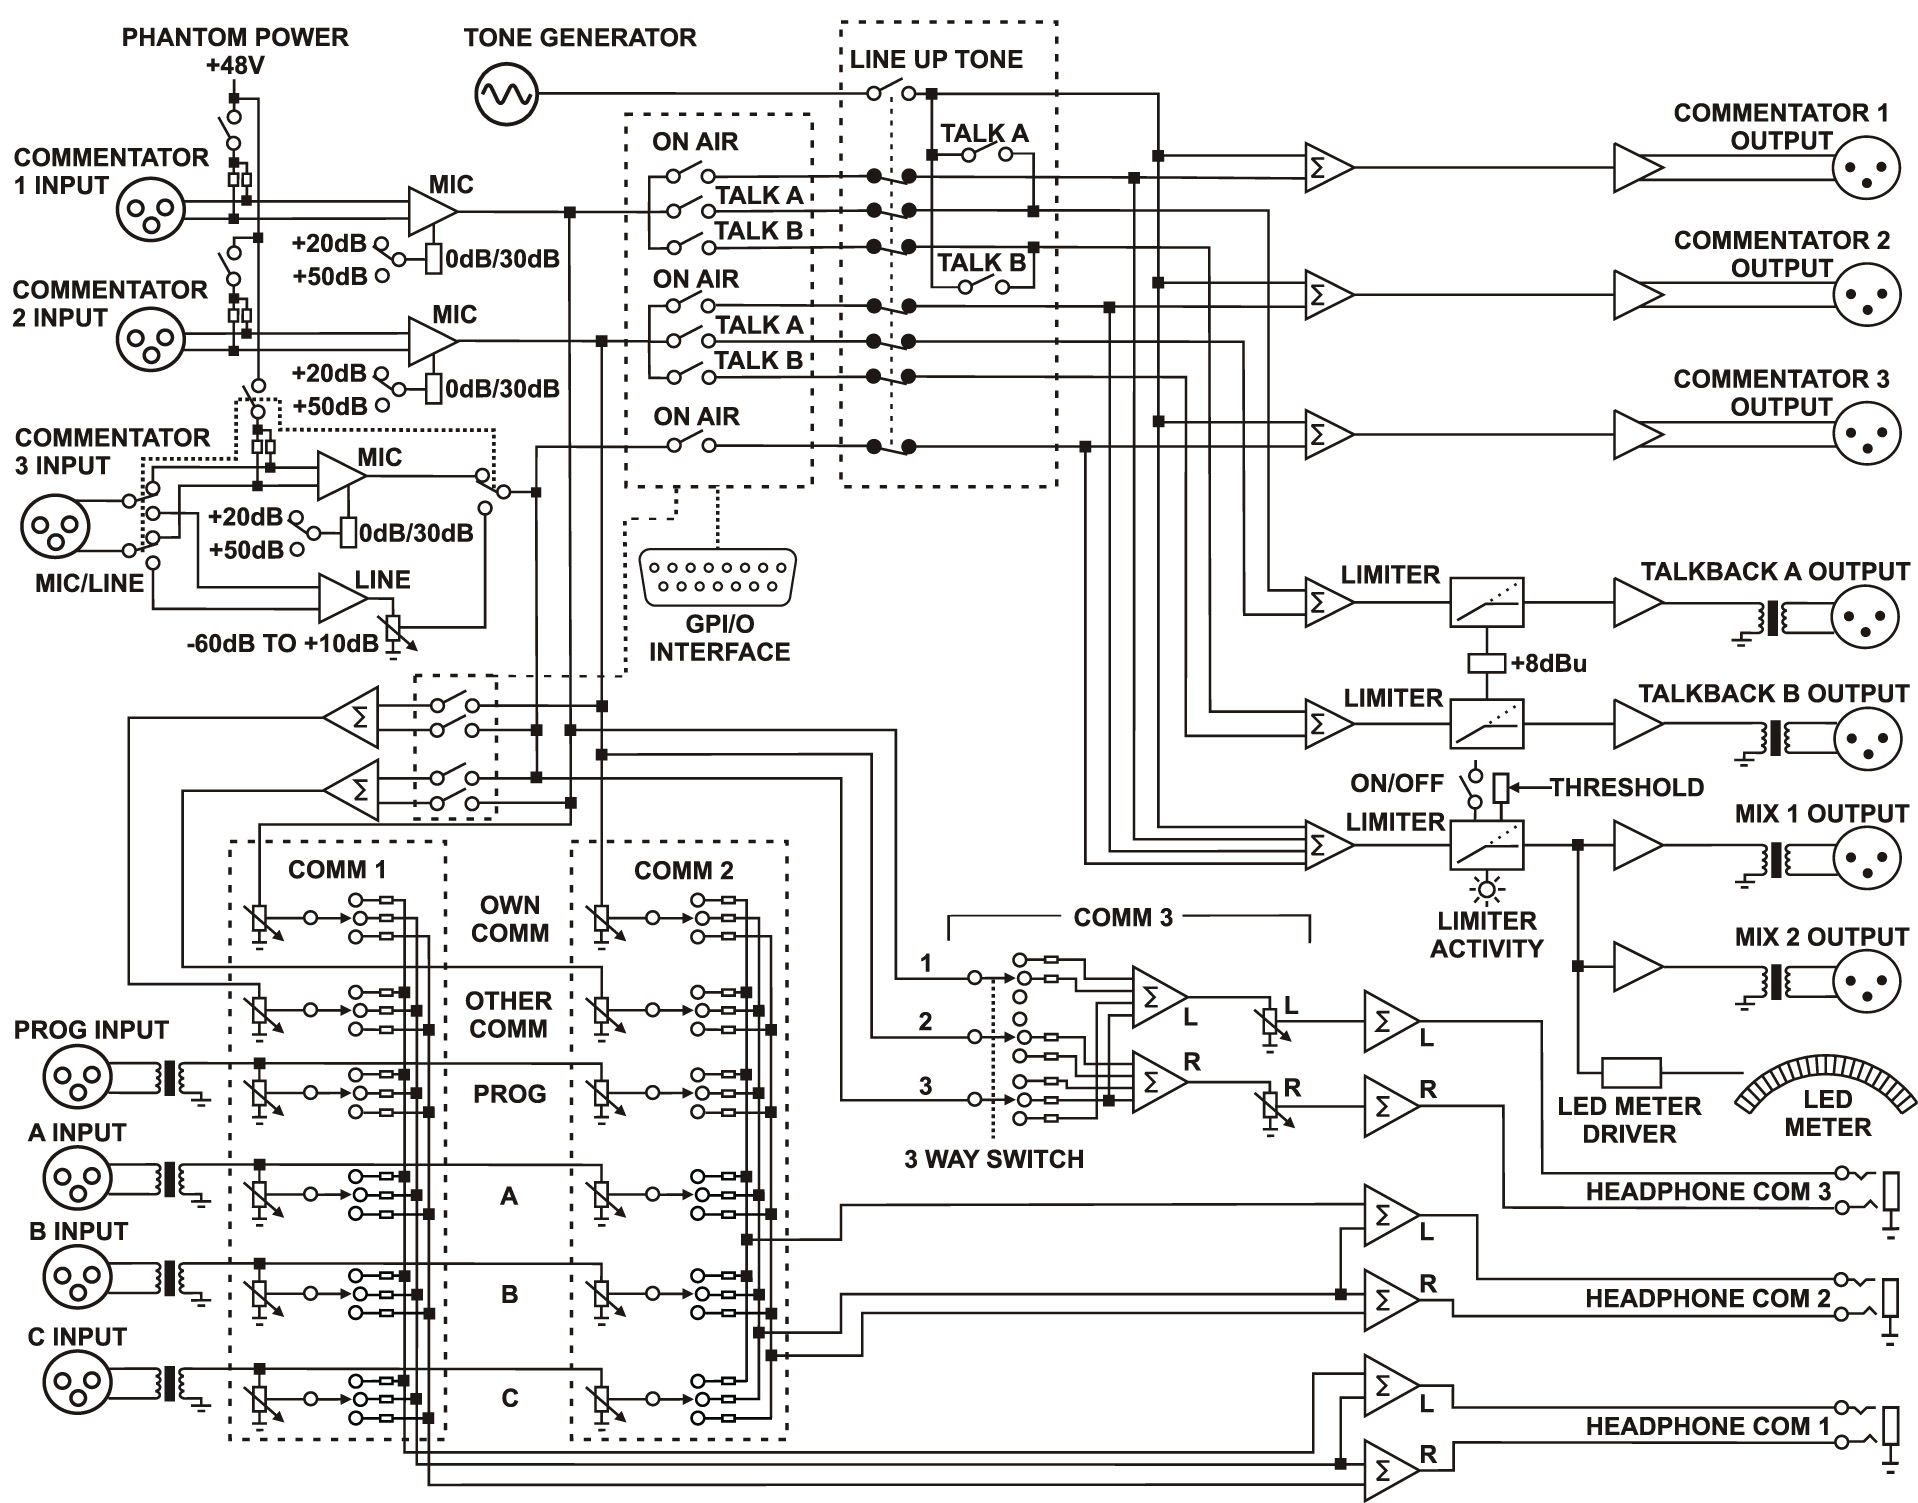 cm cu21_circuit_diagram_300dpi sonifex cm cu21 commentatator unit cm wiring diagrams at alyssarenee.co